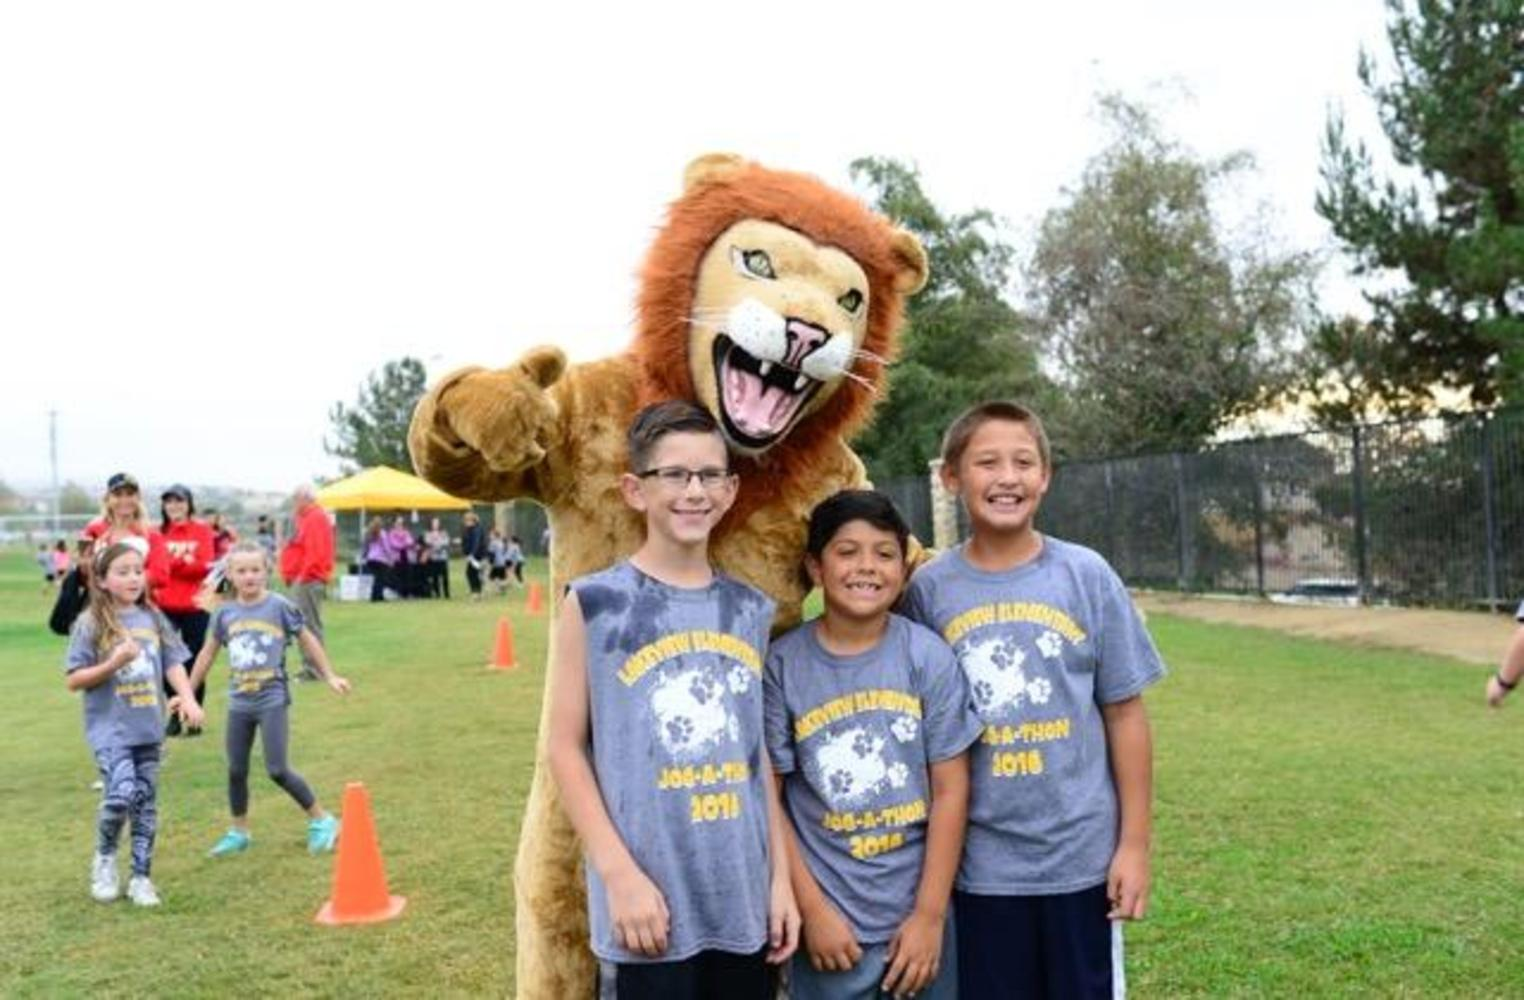 past jog-a-thon runners with lion mascot